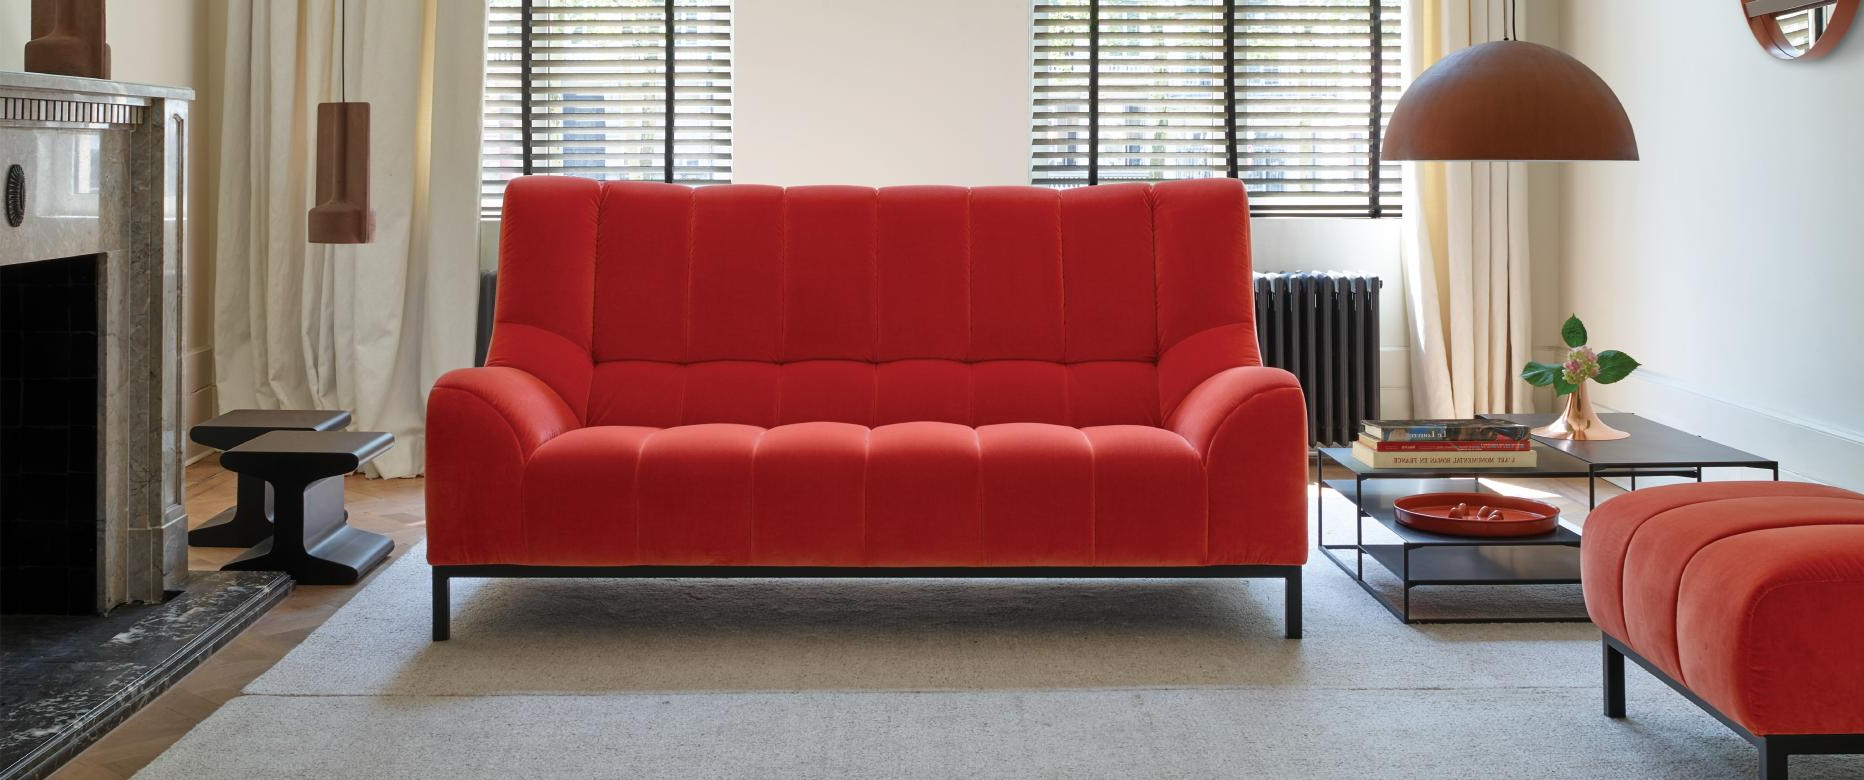 Ok sofas Opiniones 4pde Ligne Roset Official Site Contemporary High End Furniture